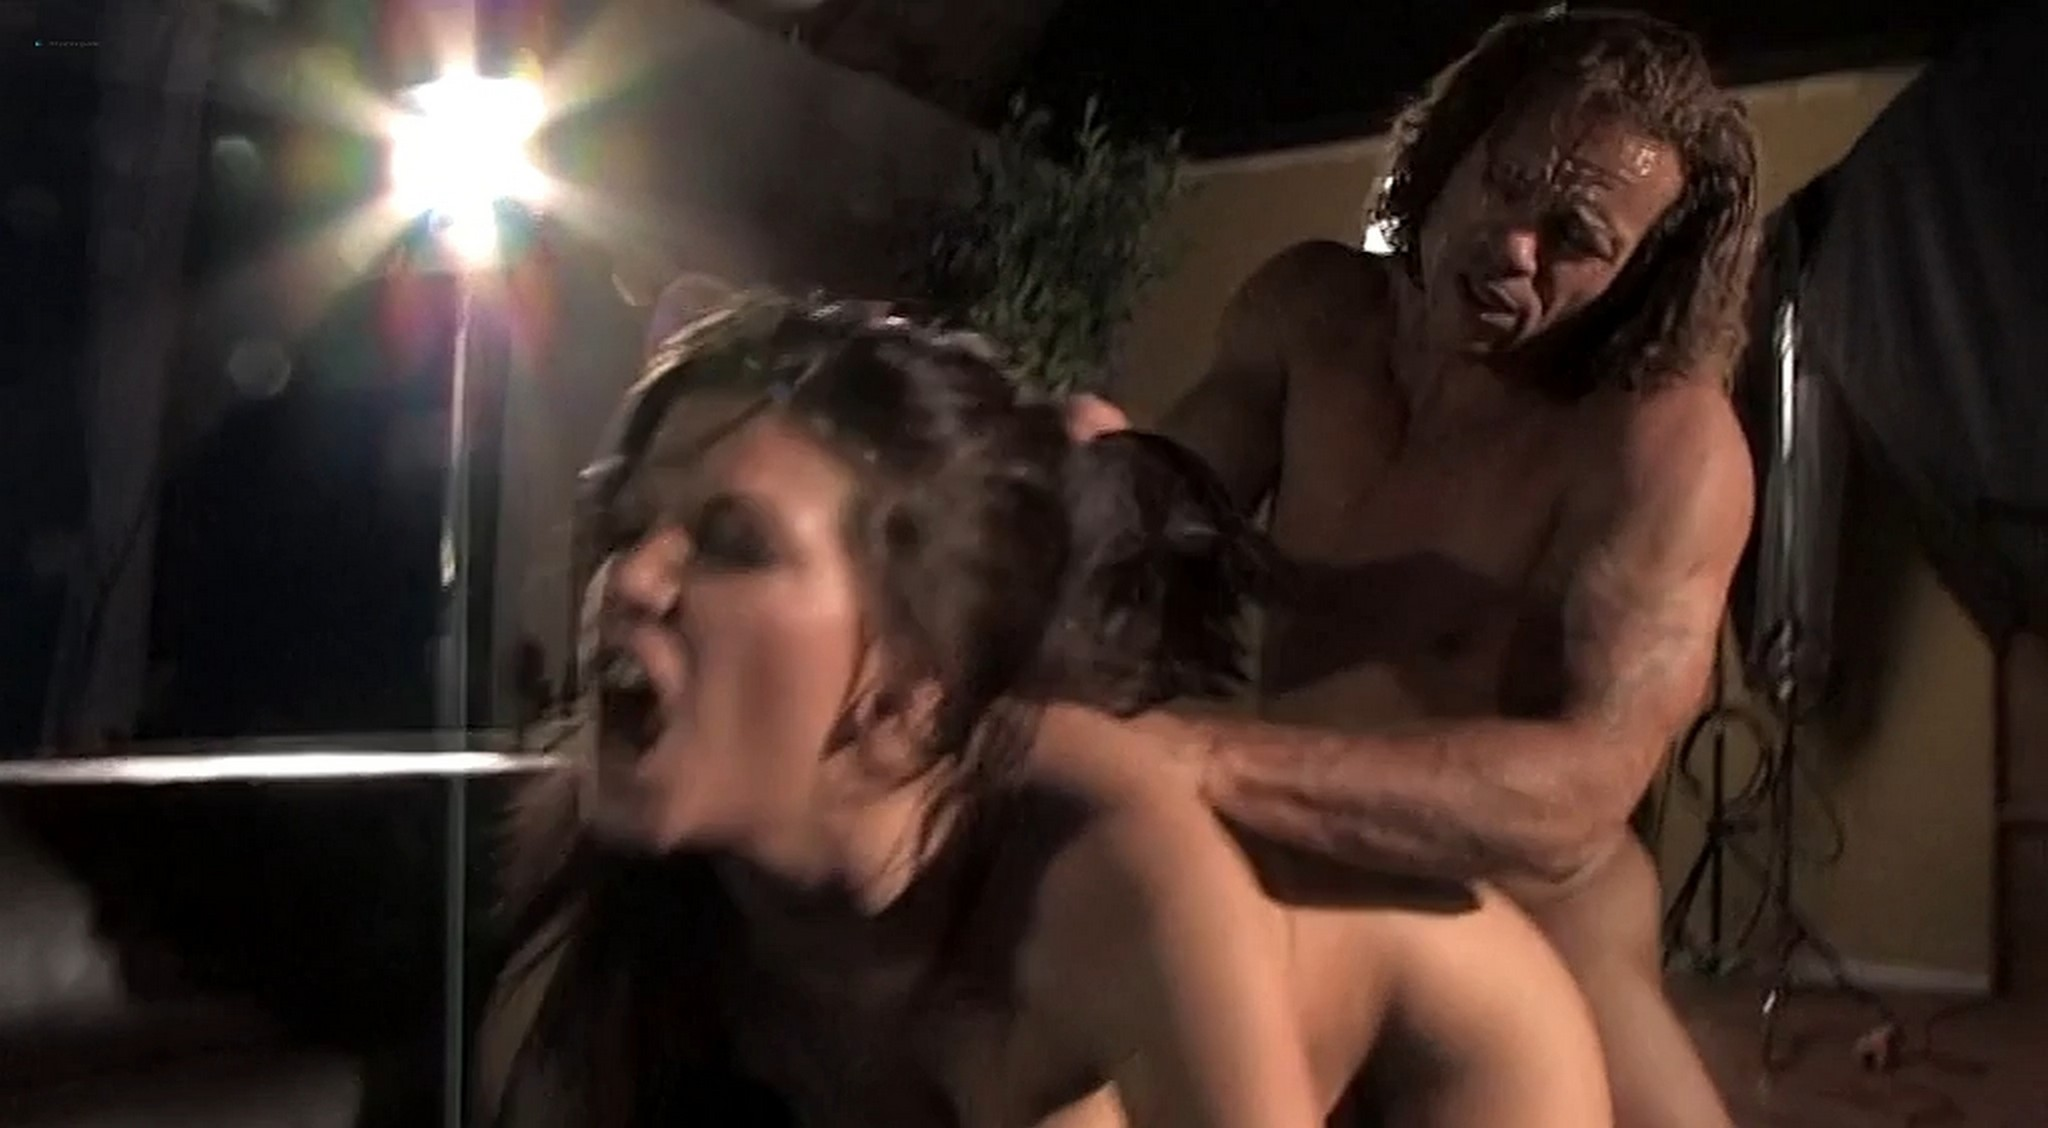 Victoria De Mare nude Roxy DeVille and others nude sex too Bio Slime 2010 DVDRip 15